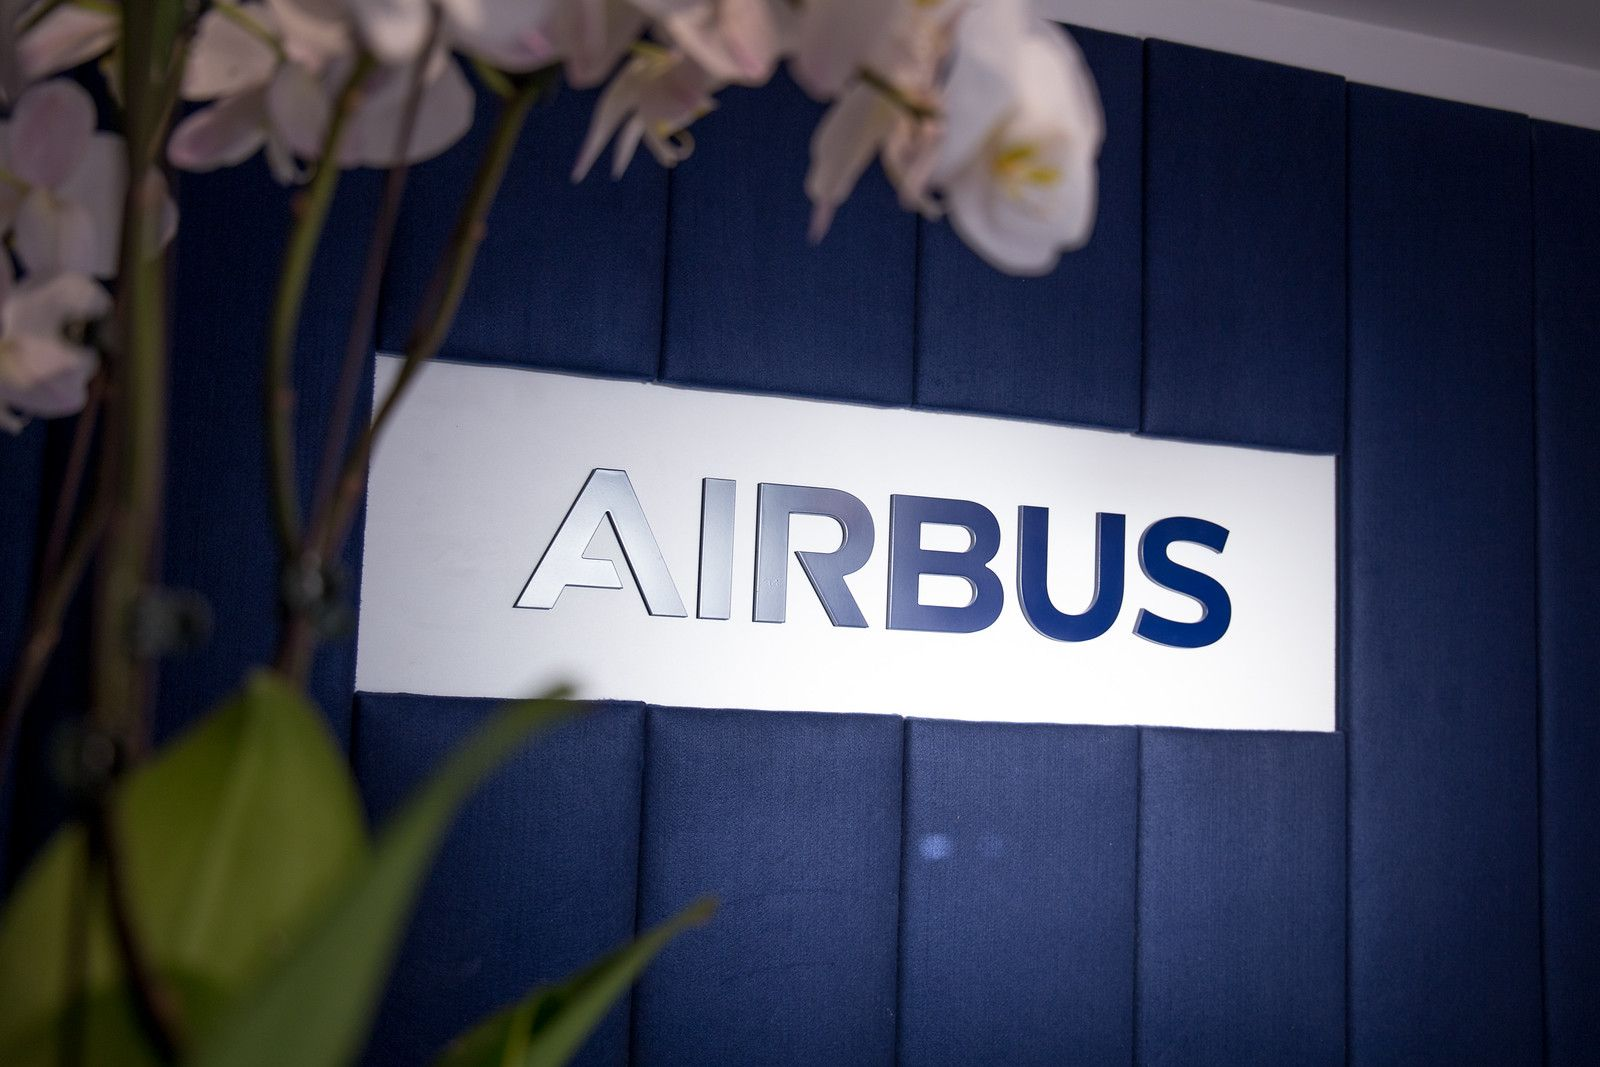 Airbus Corporate Chalets Reception